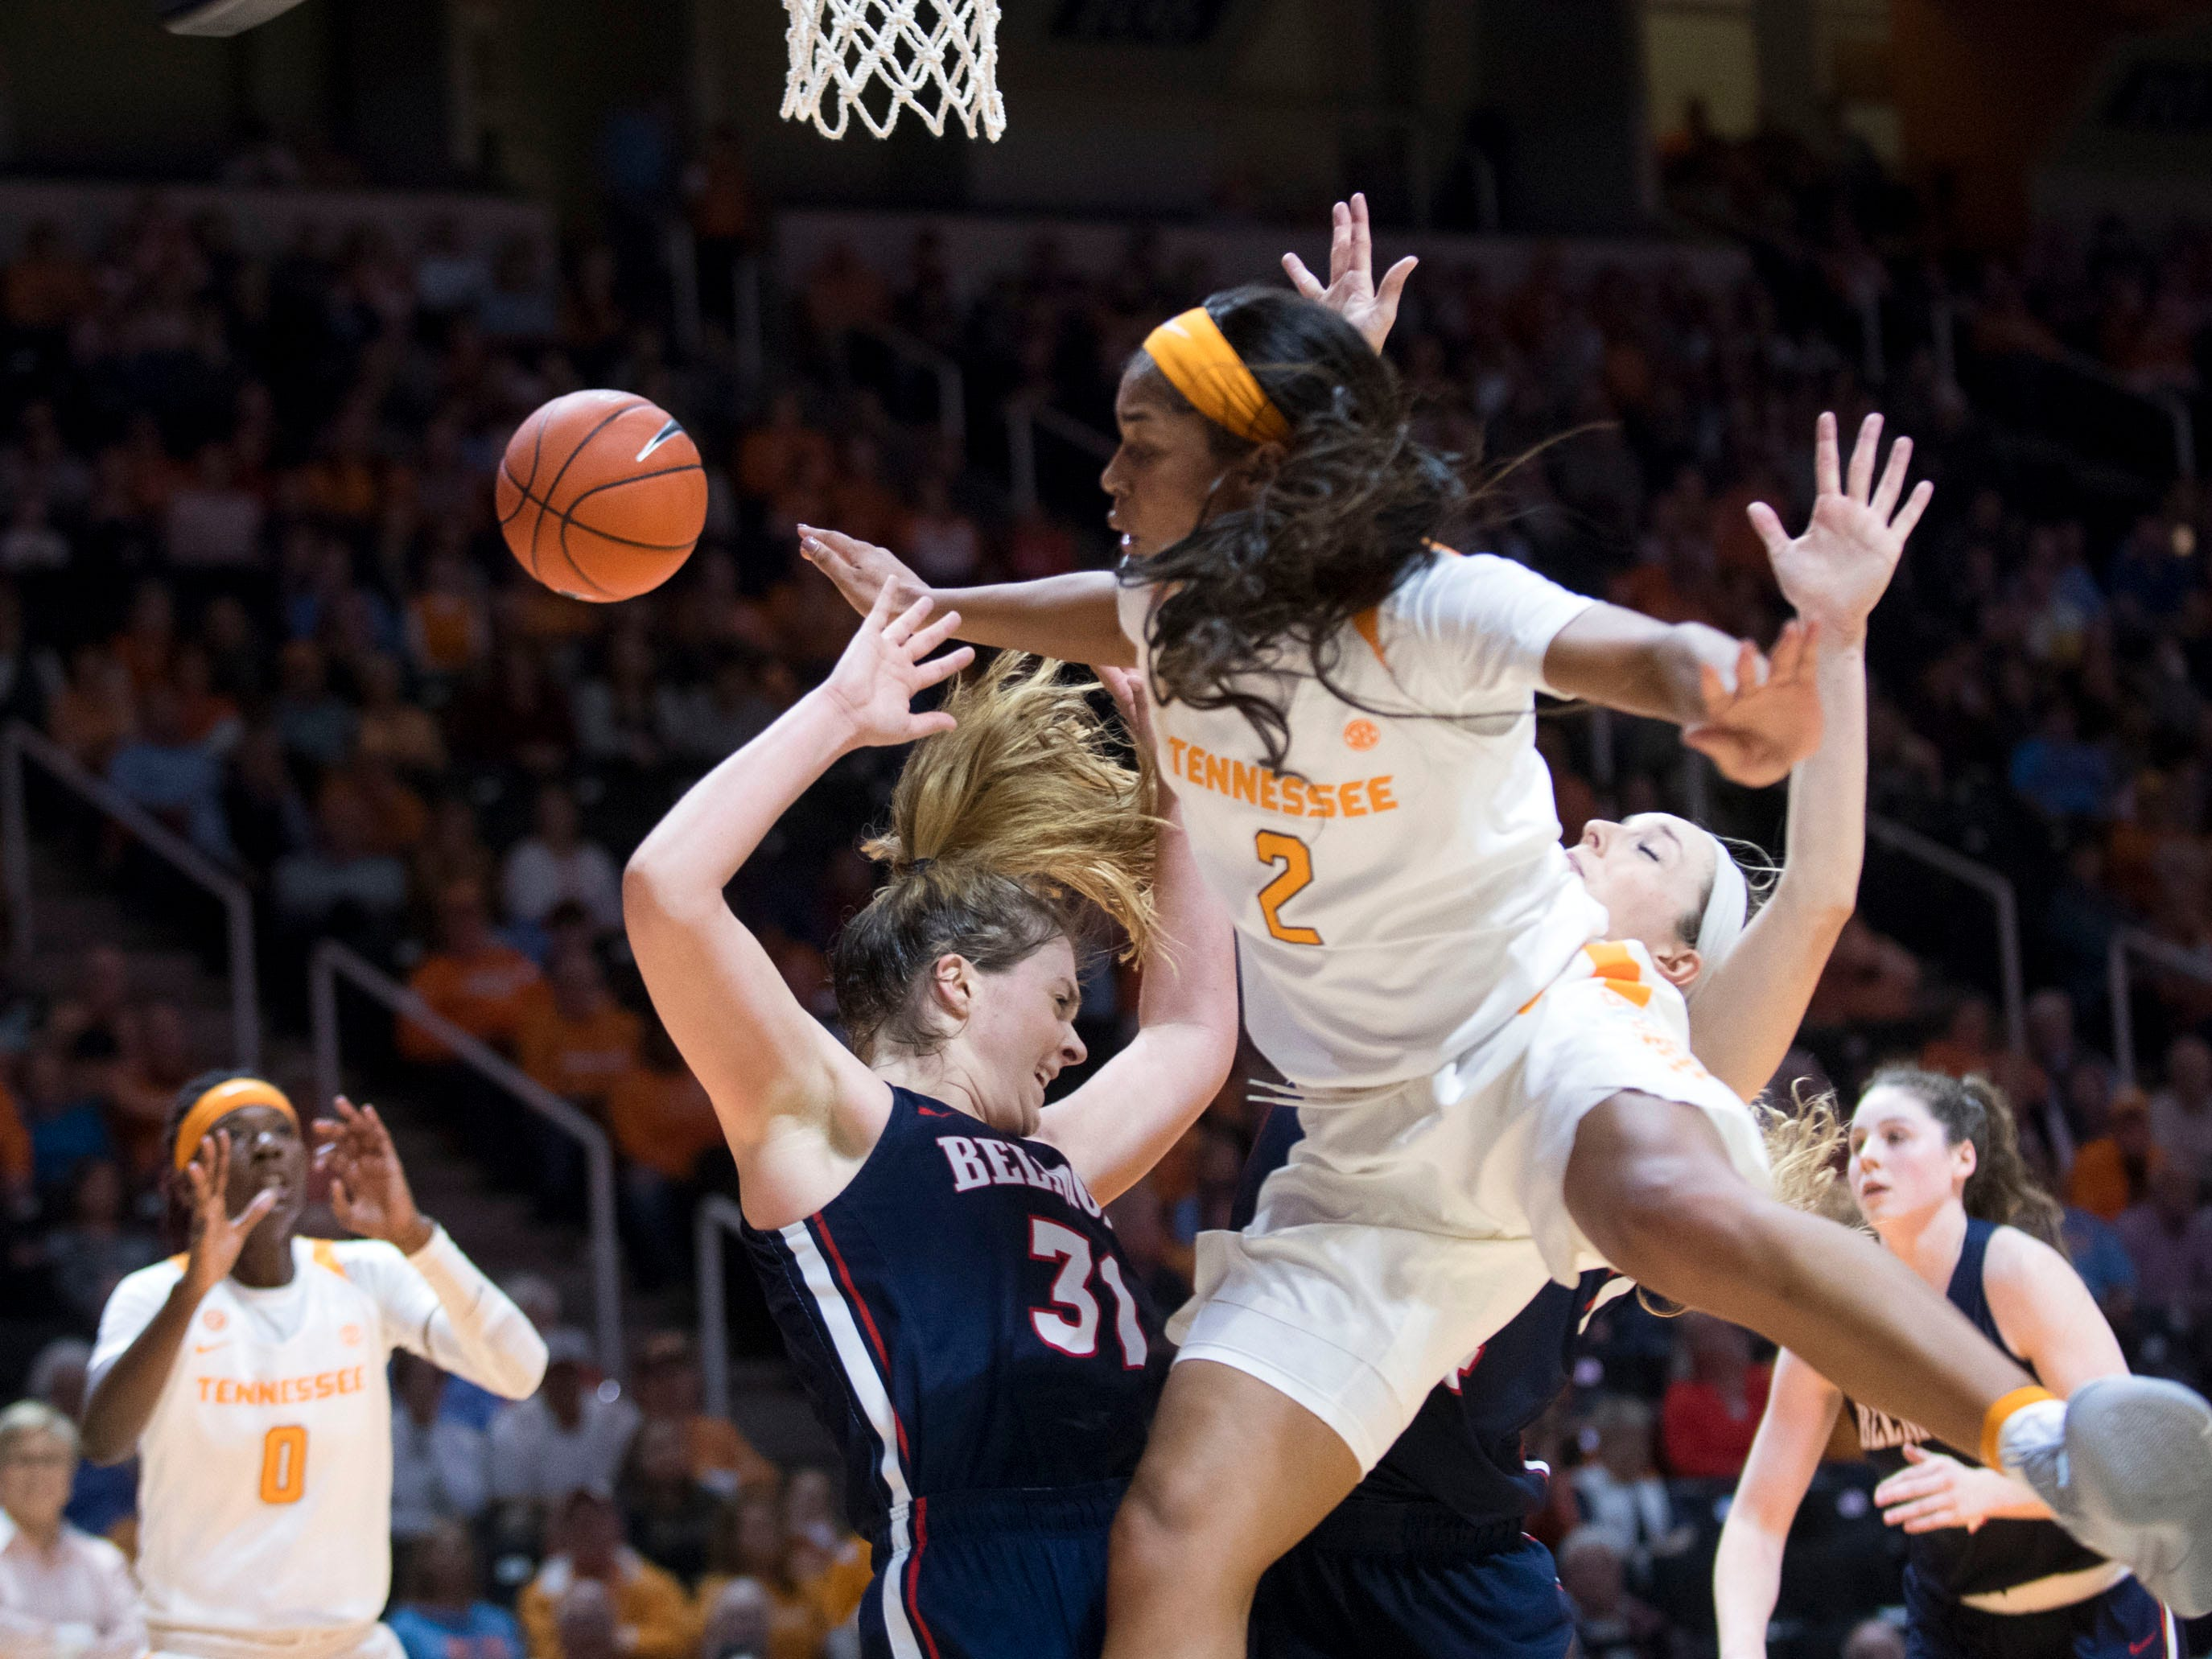 Tennessee's Evina Westbrook (2) collides with Belmont's Maura Muensterman (31) on Sunday, December 30, 2018.